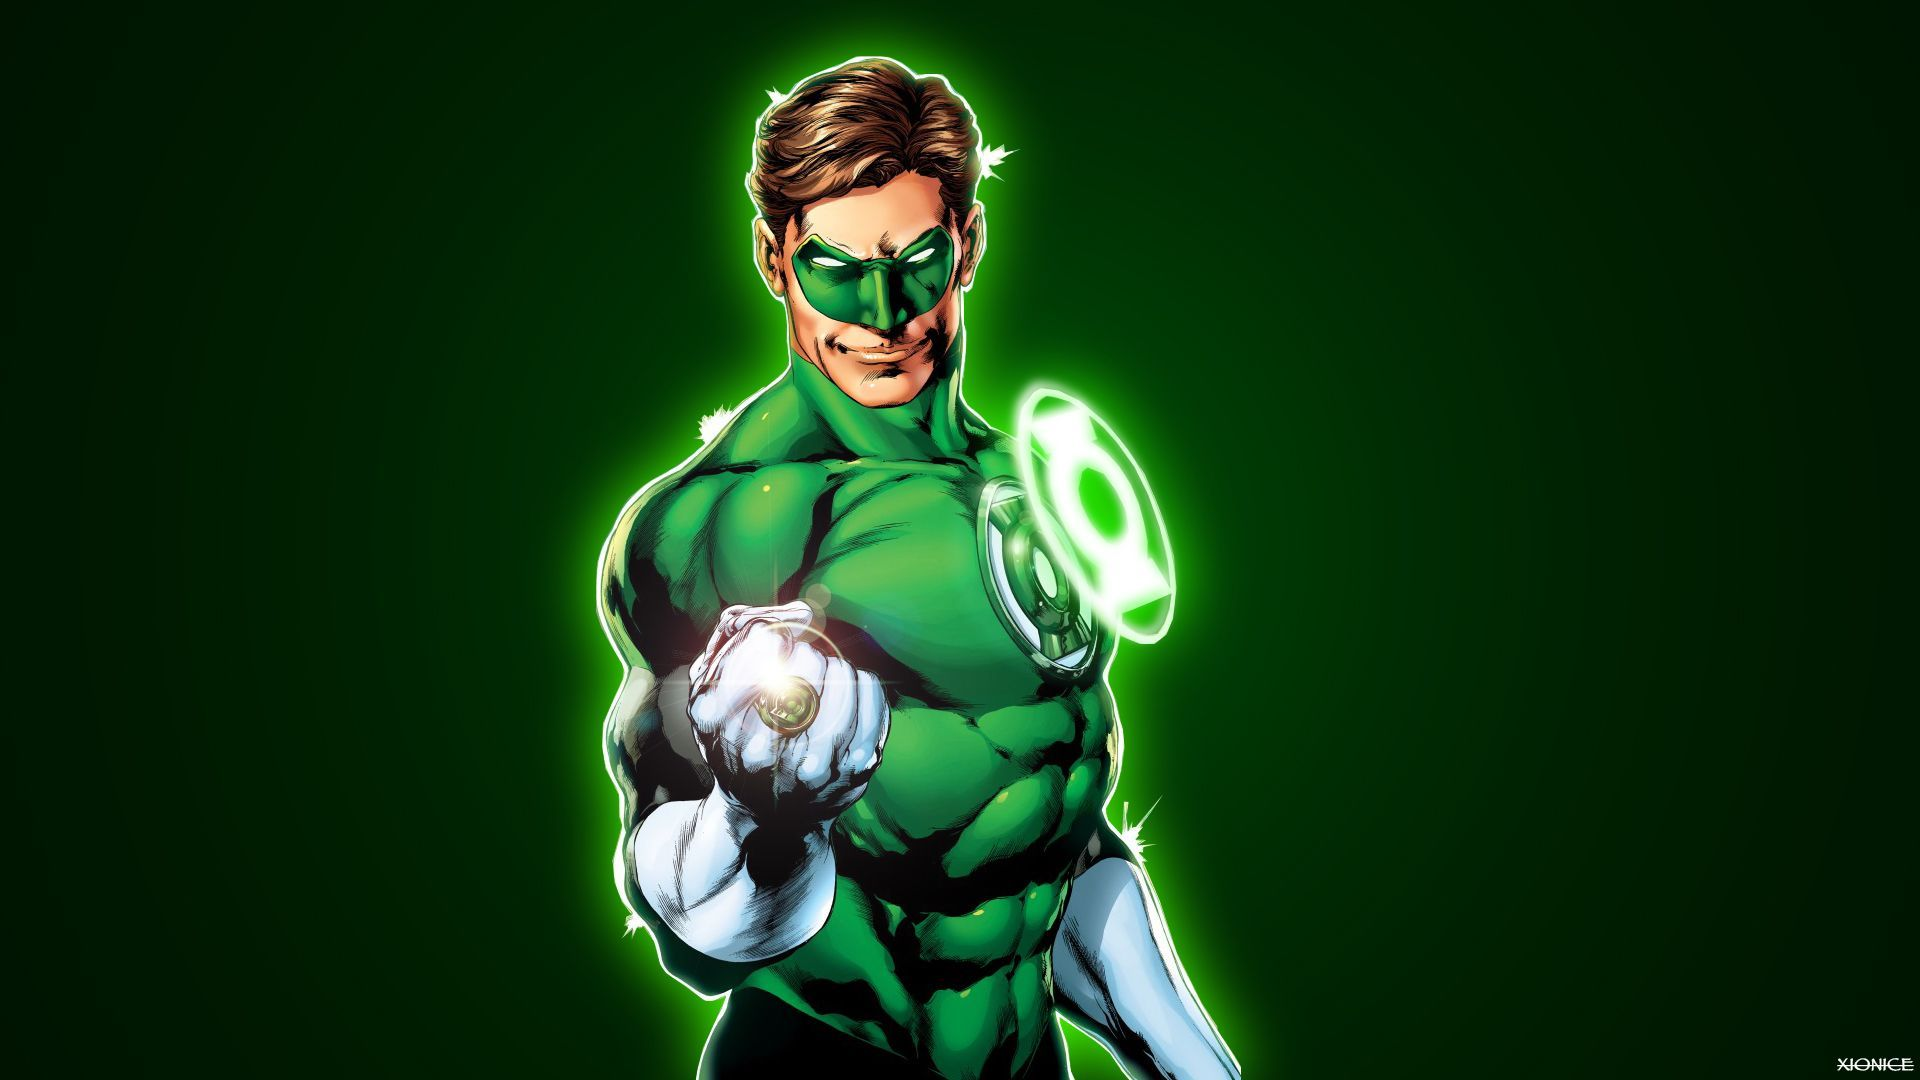 Green Lantern Wallpaper 1920x1080